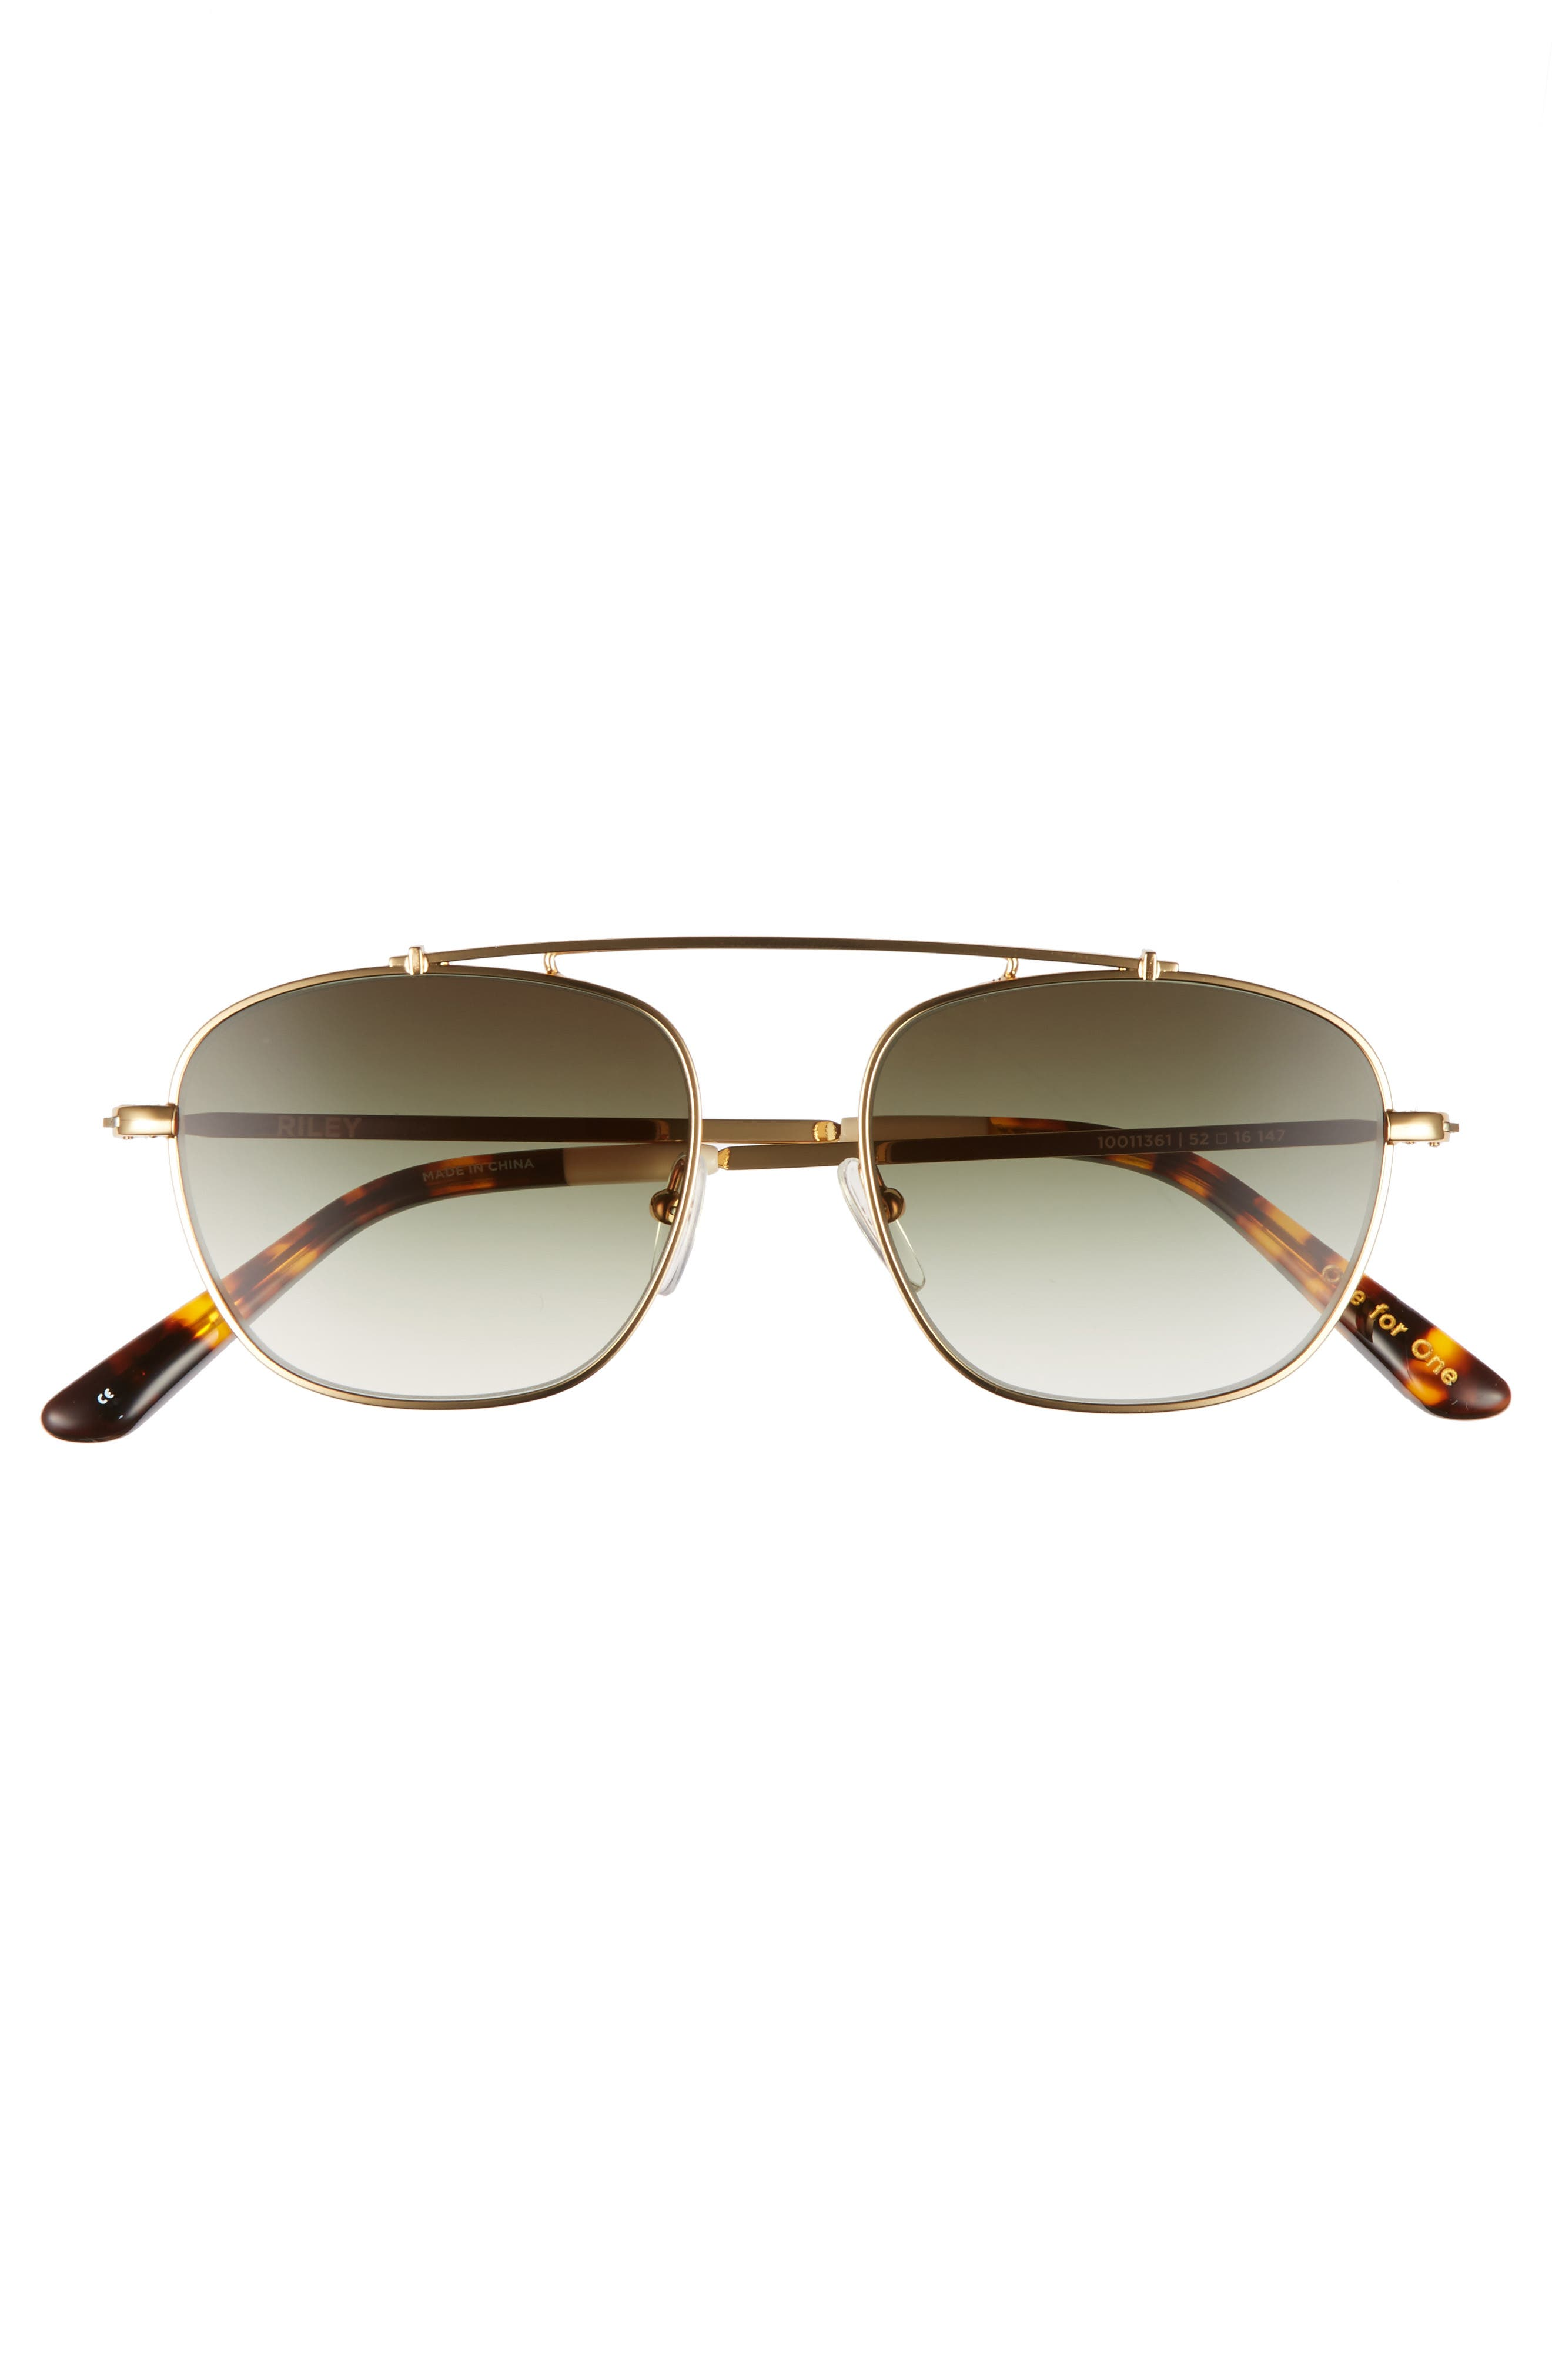 Riley 52mm Sunglasses,                             Alternate thumbnail 2, color,                             Shiny Gold